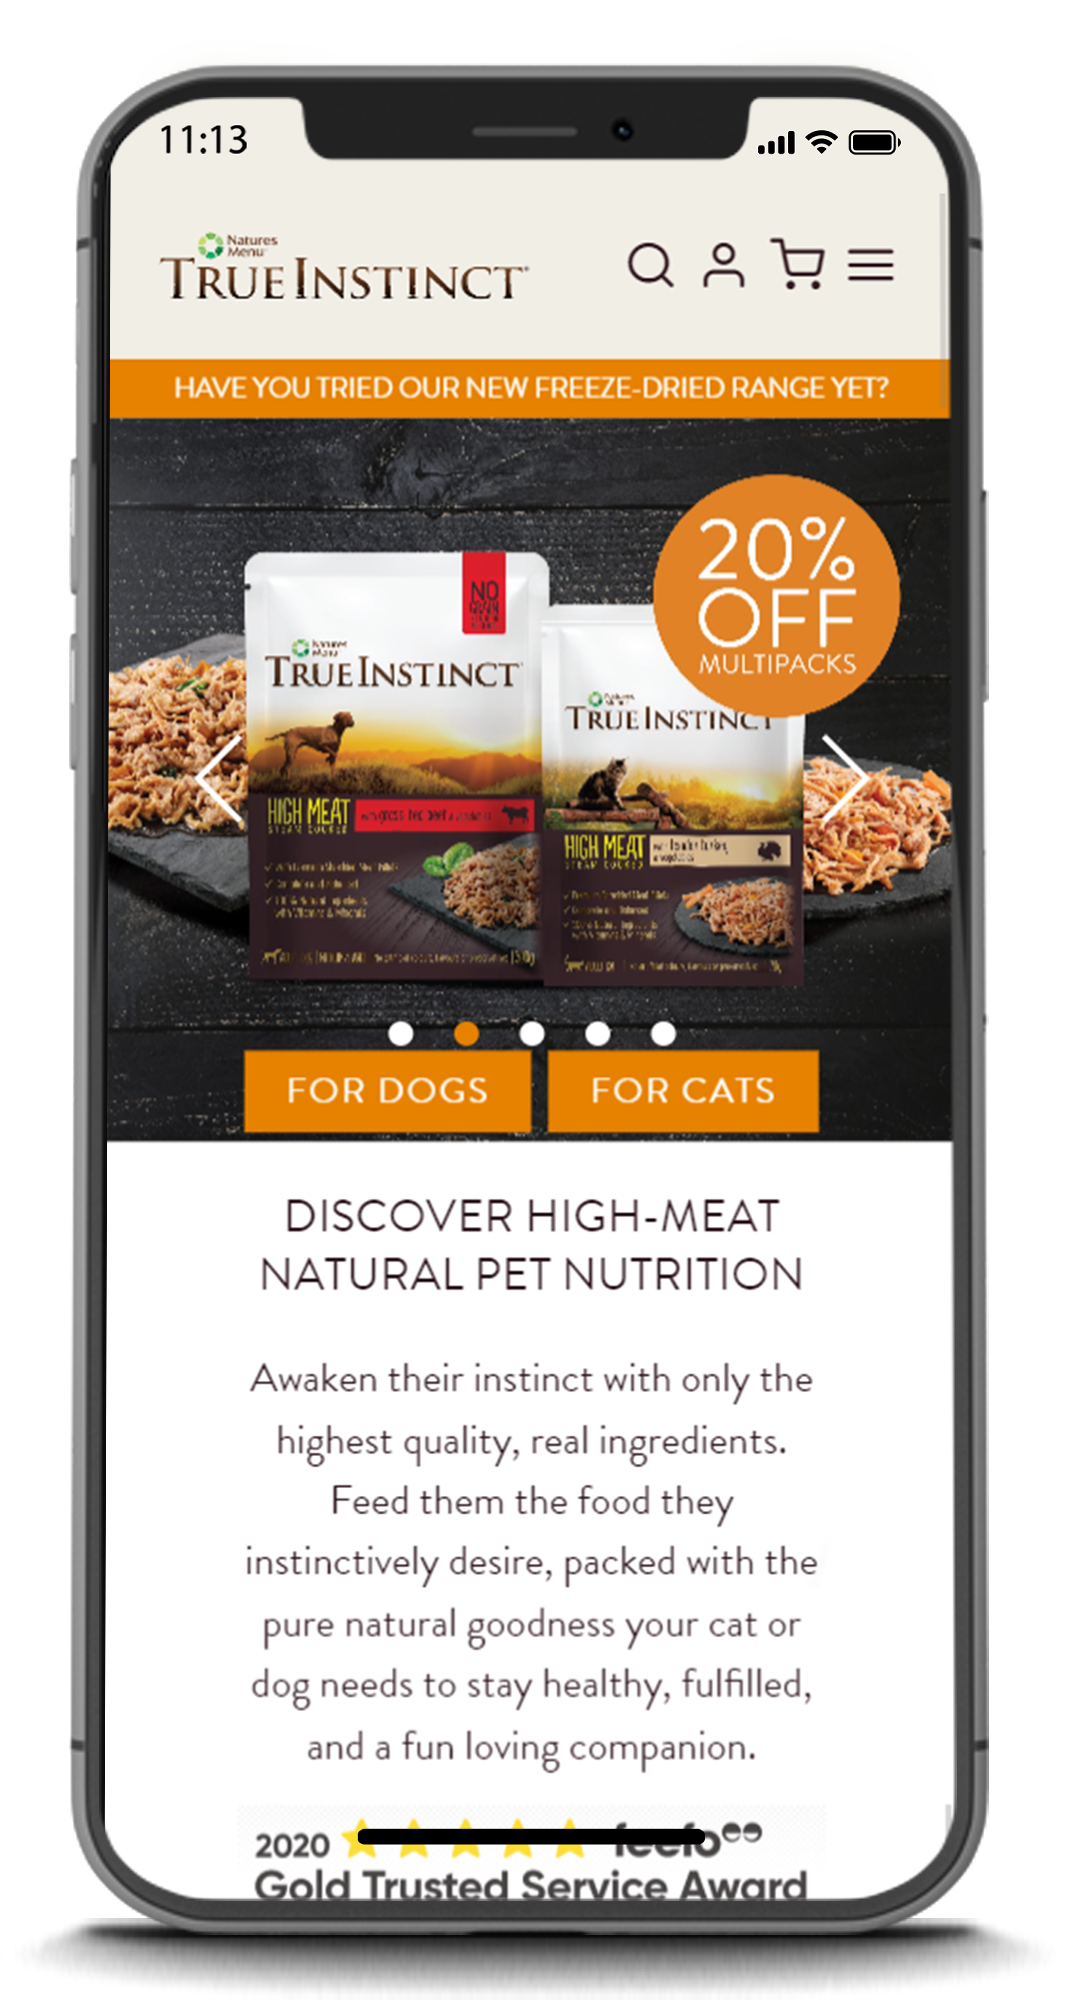 example of the True Instinct ecommerce website on a mobile device